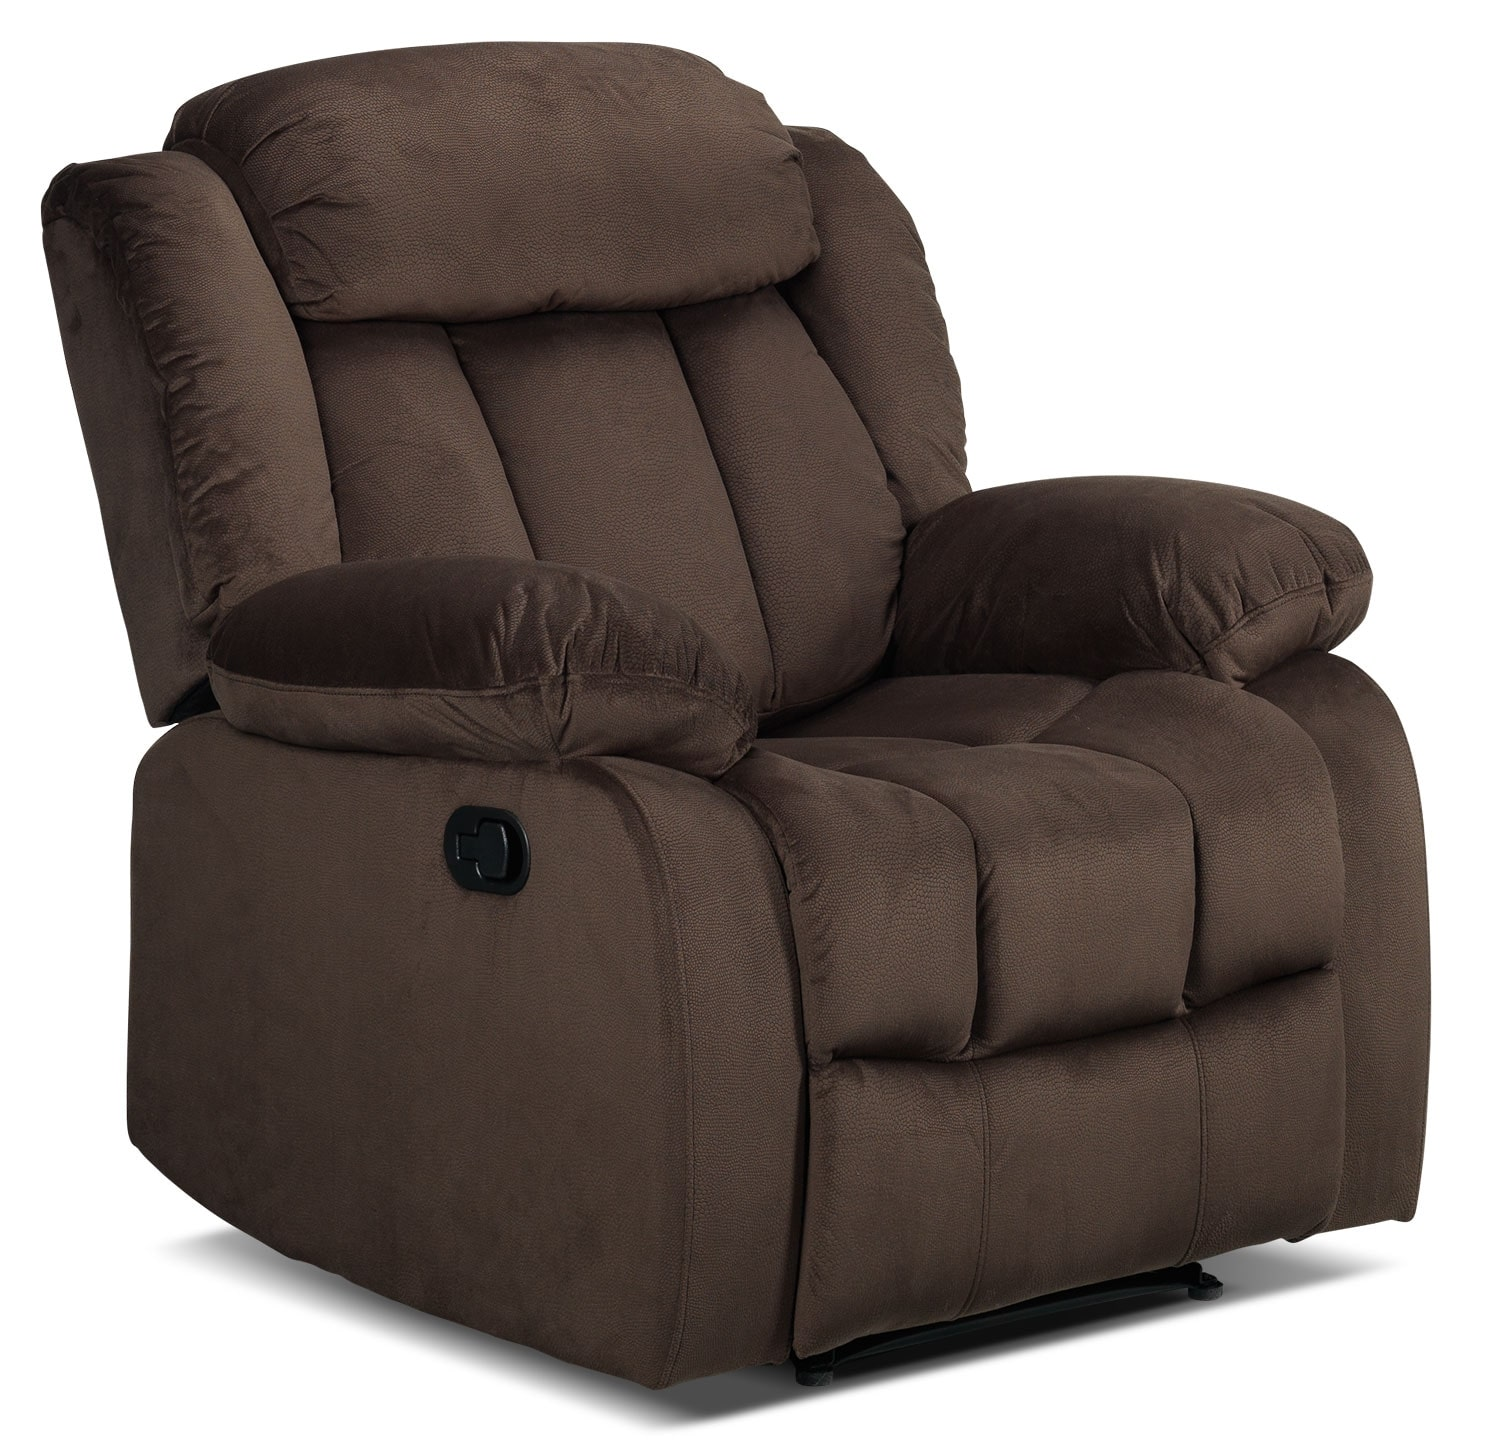 Living Room Furniture - Alabama Recliner